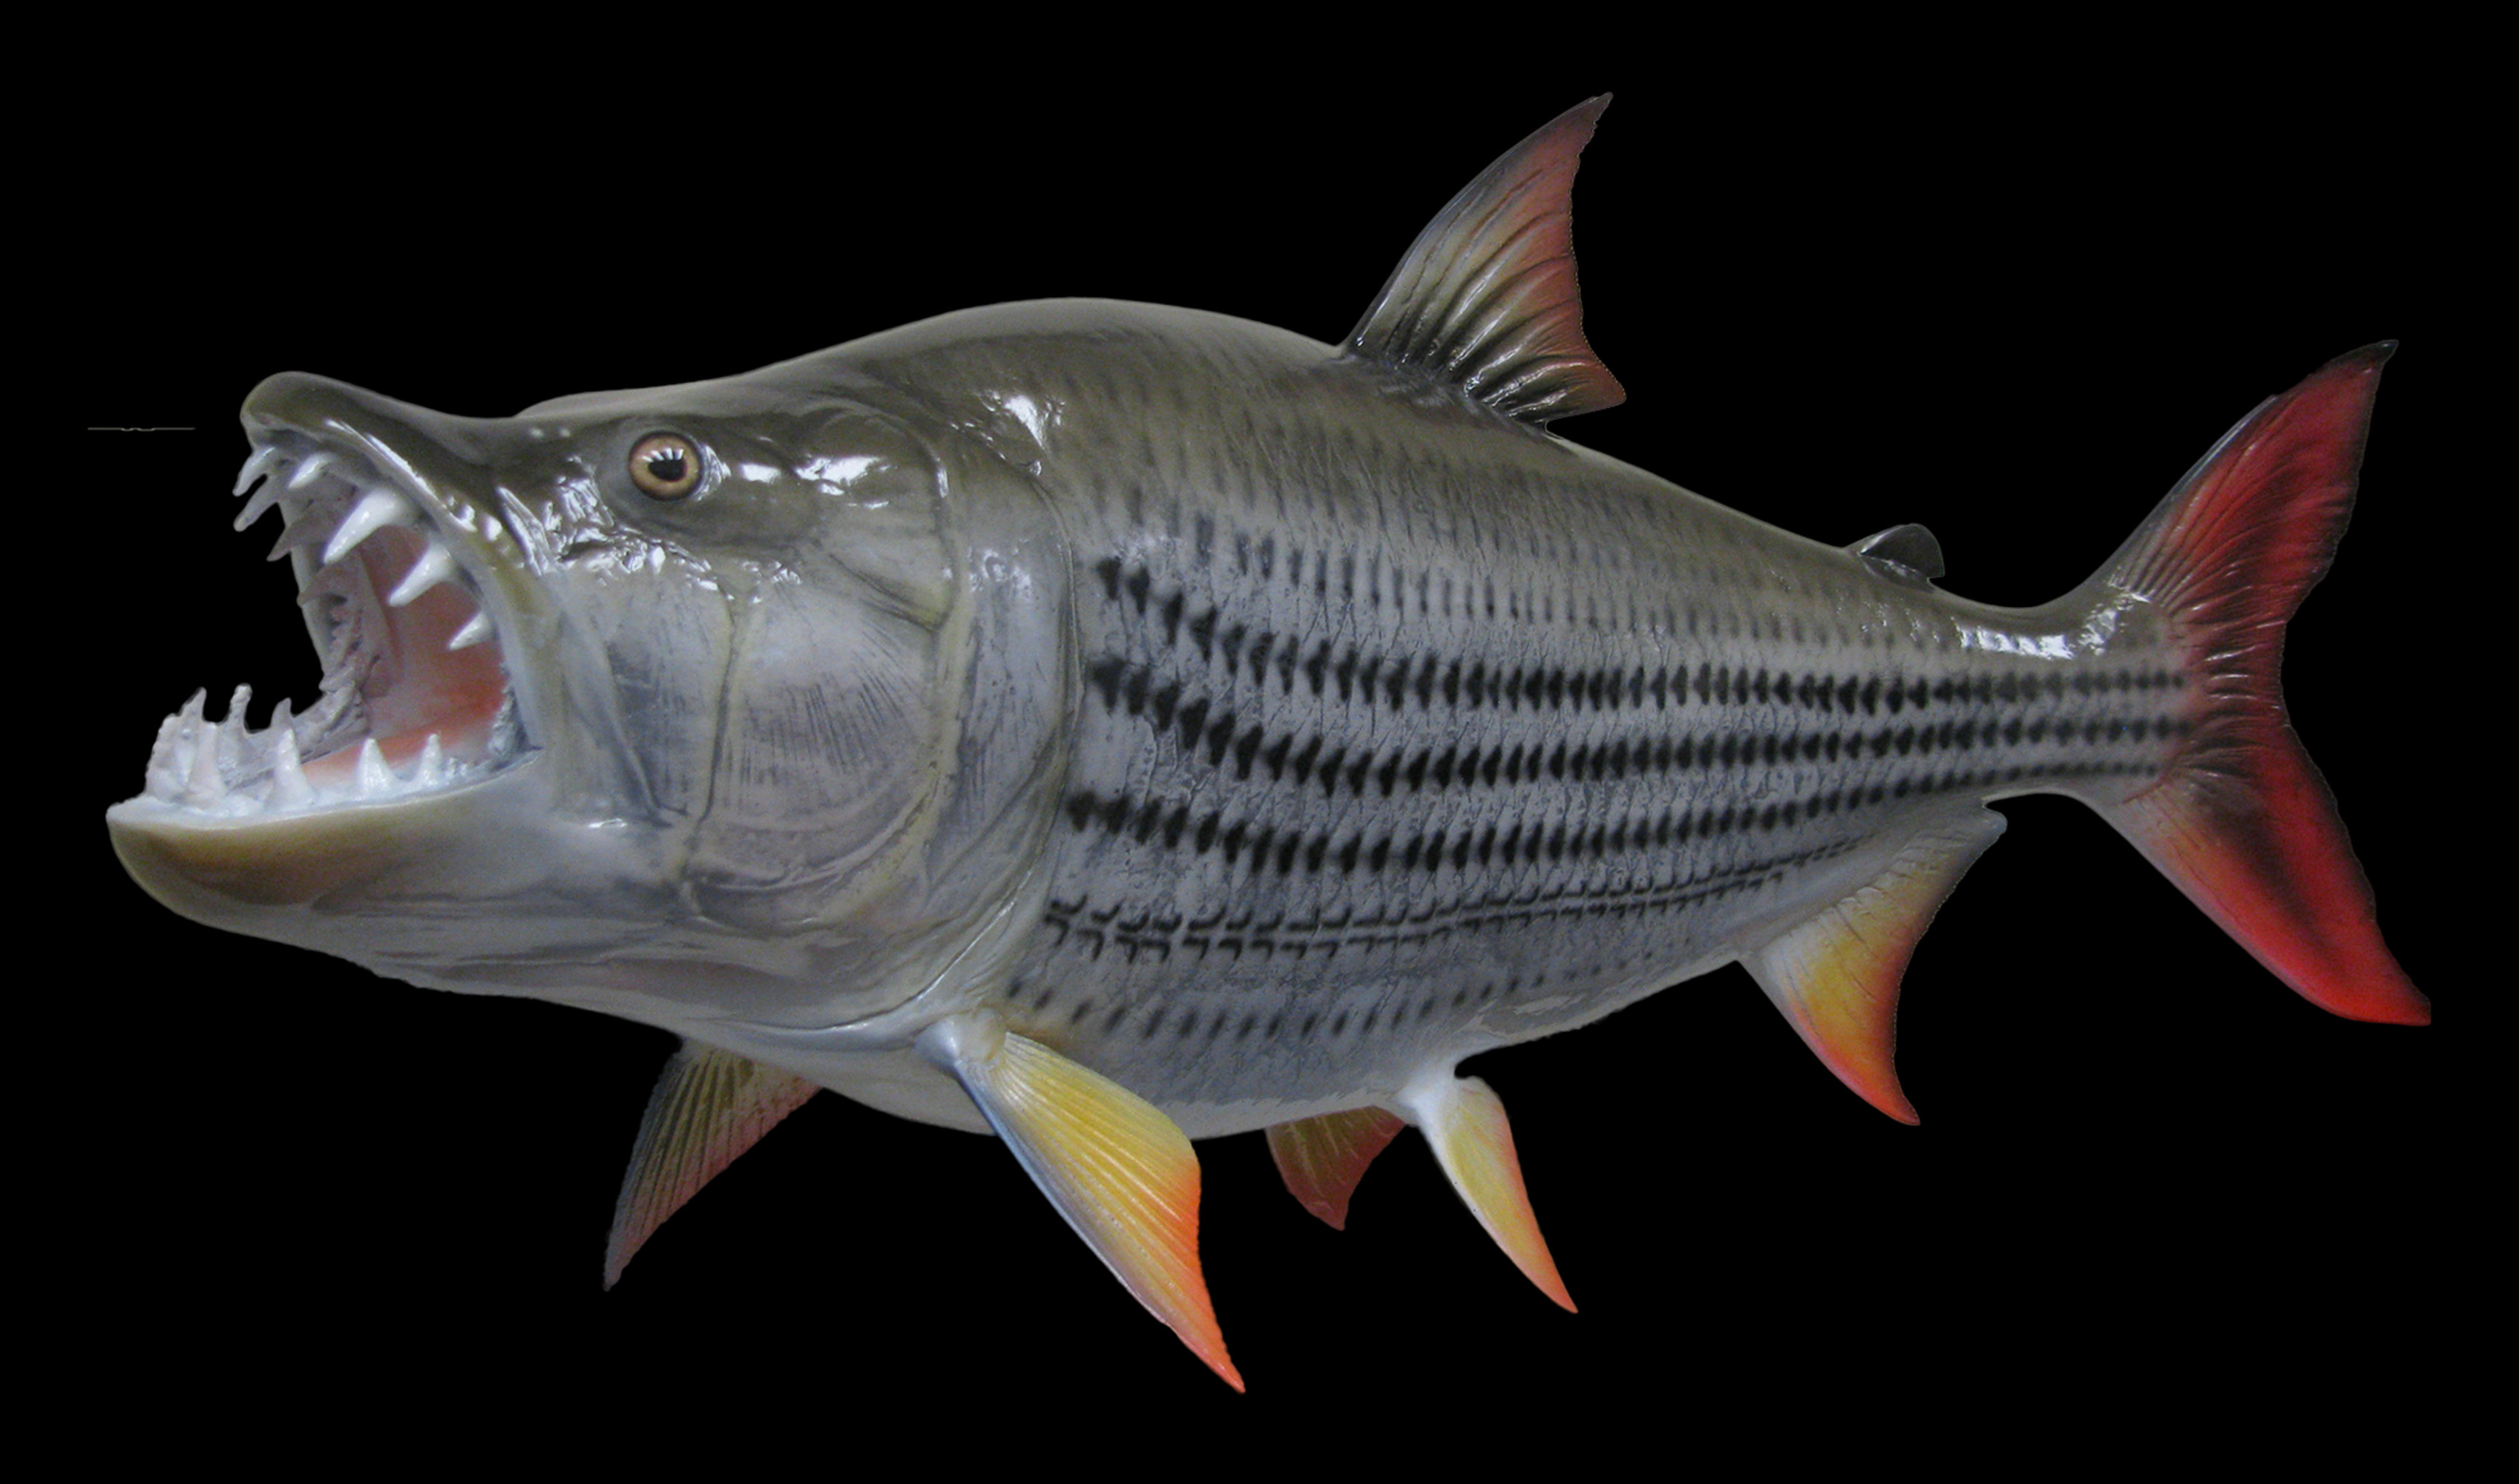 Tigerfish fish mount and fish replicas coast to coast for What fish is this